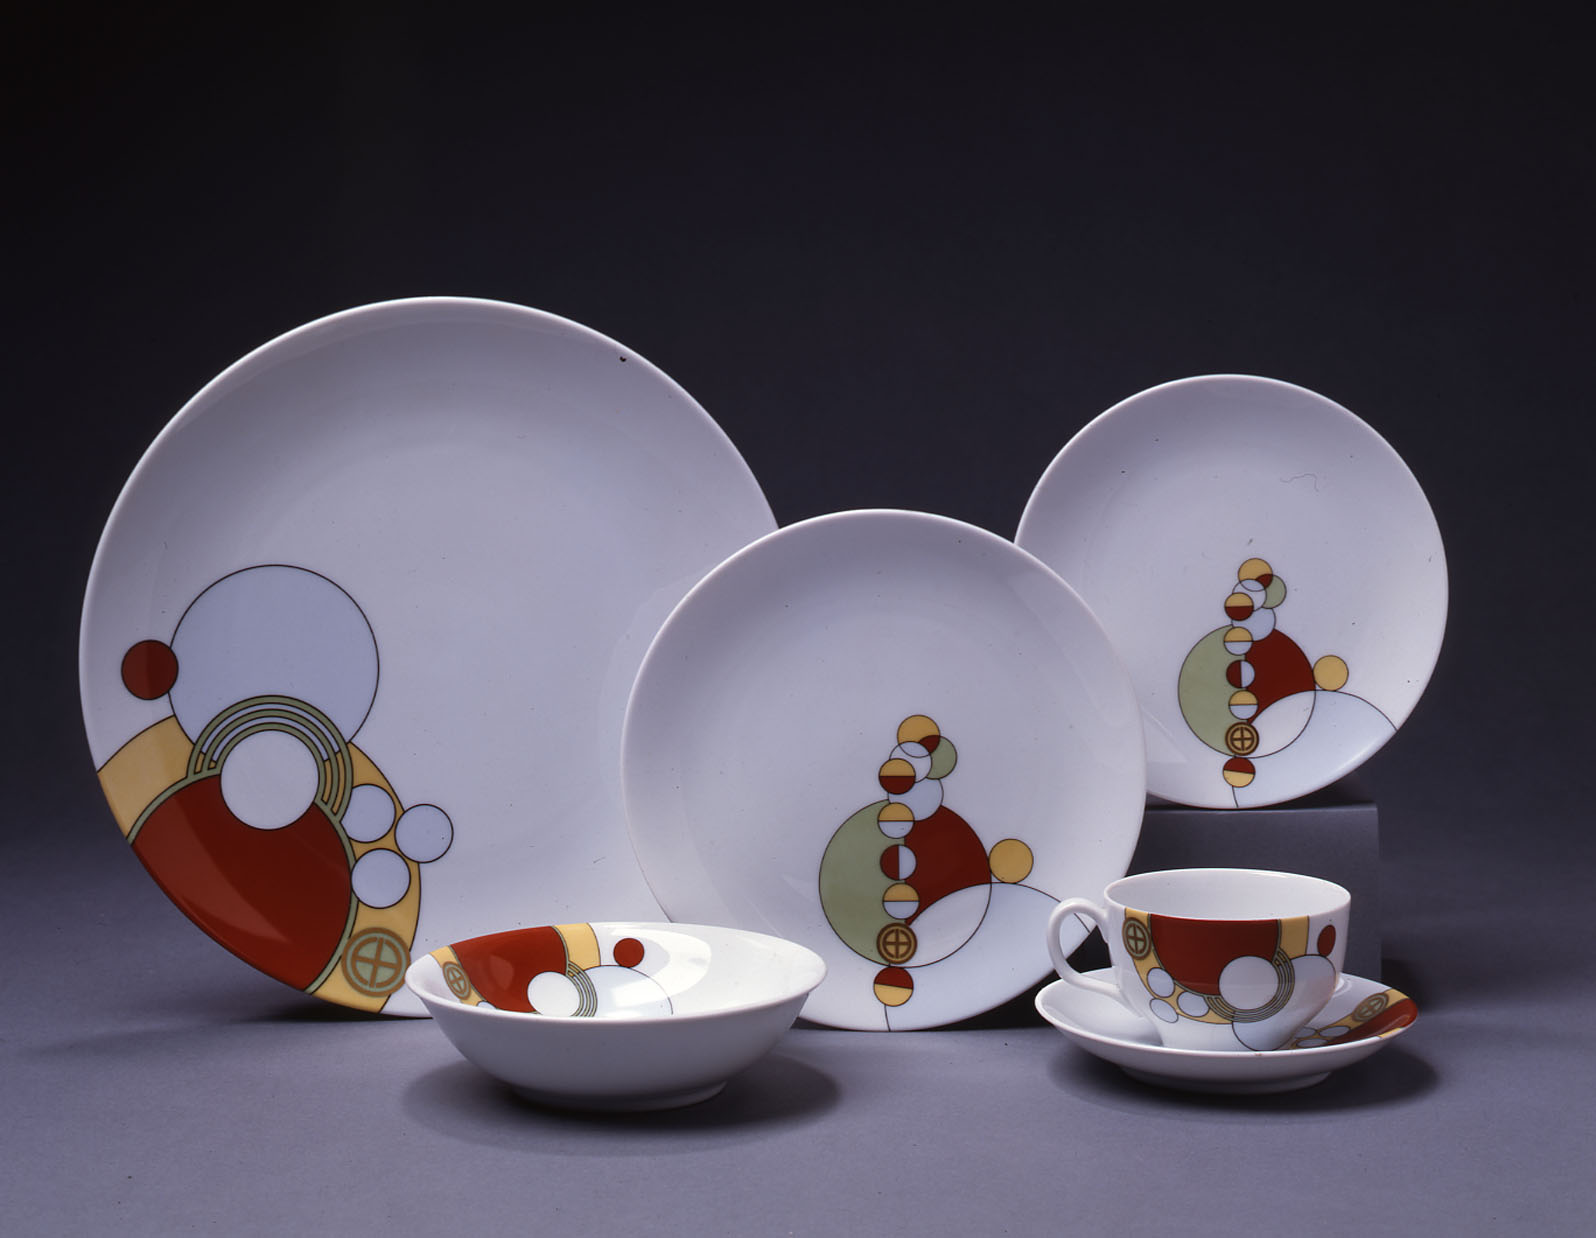 Frank Lloyd Wright  Cabaret  dinner service 1962-1968. Four six-piece place settings porcelain. Manufactured for the Imperial Hotel. & Material Matters: Frank Lloyd Wrightu0027s Dinnerware